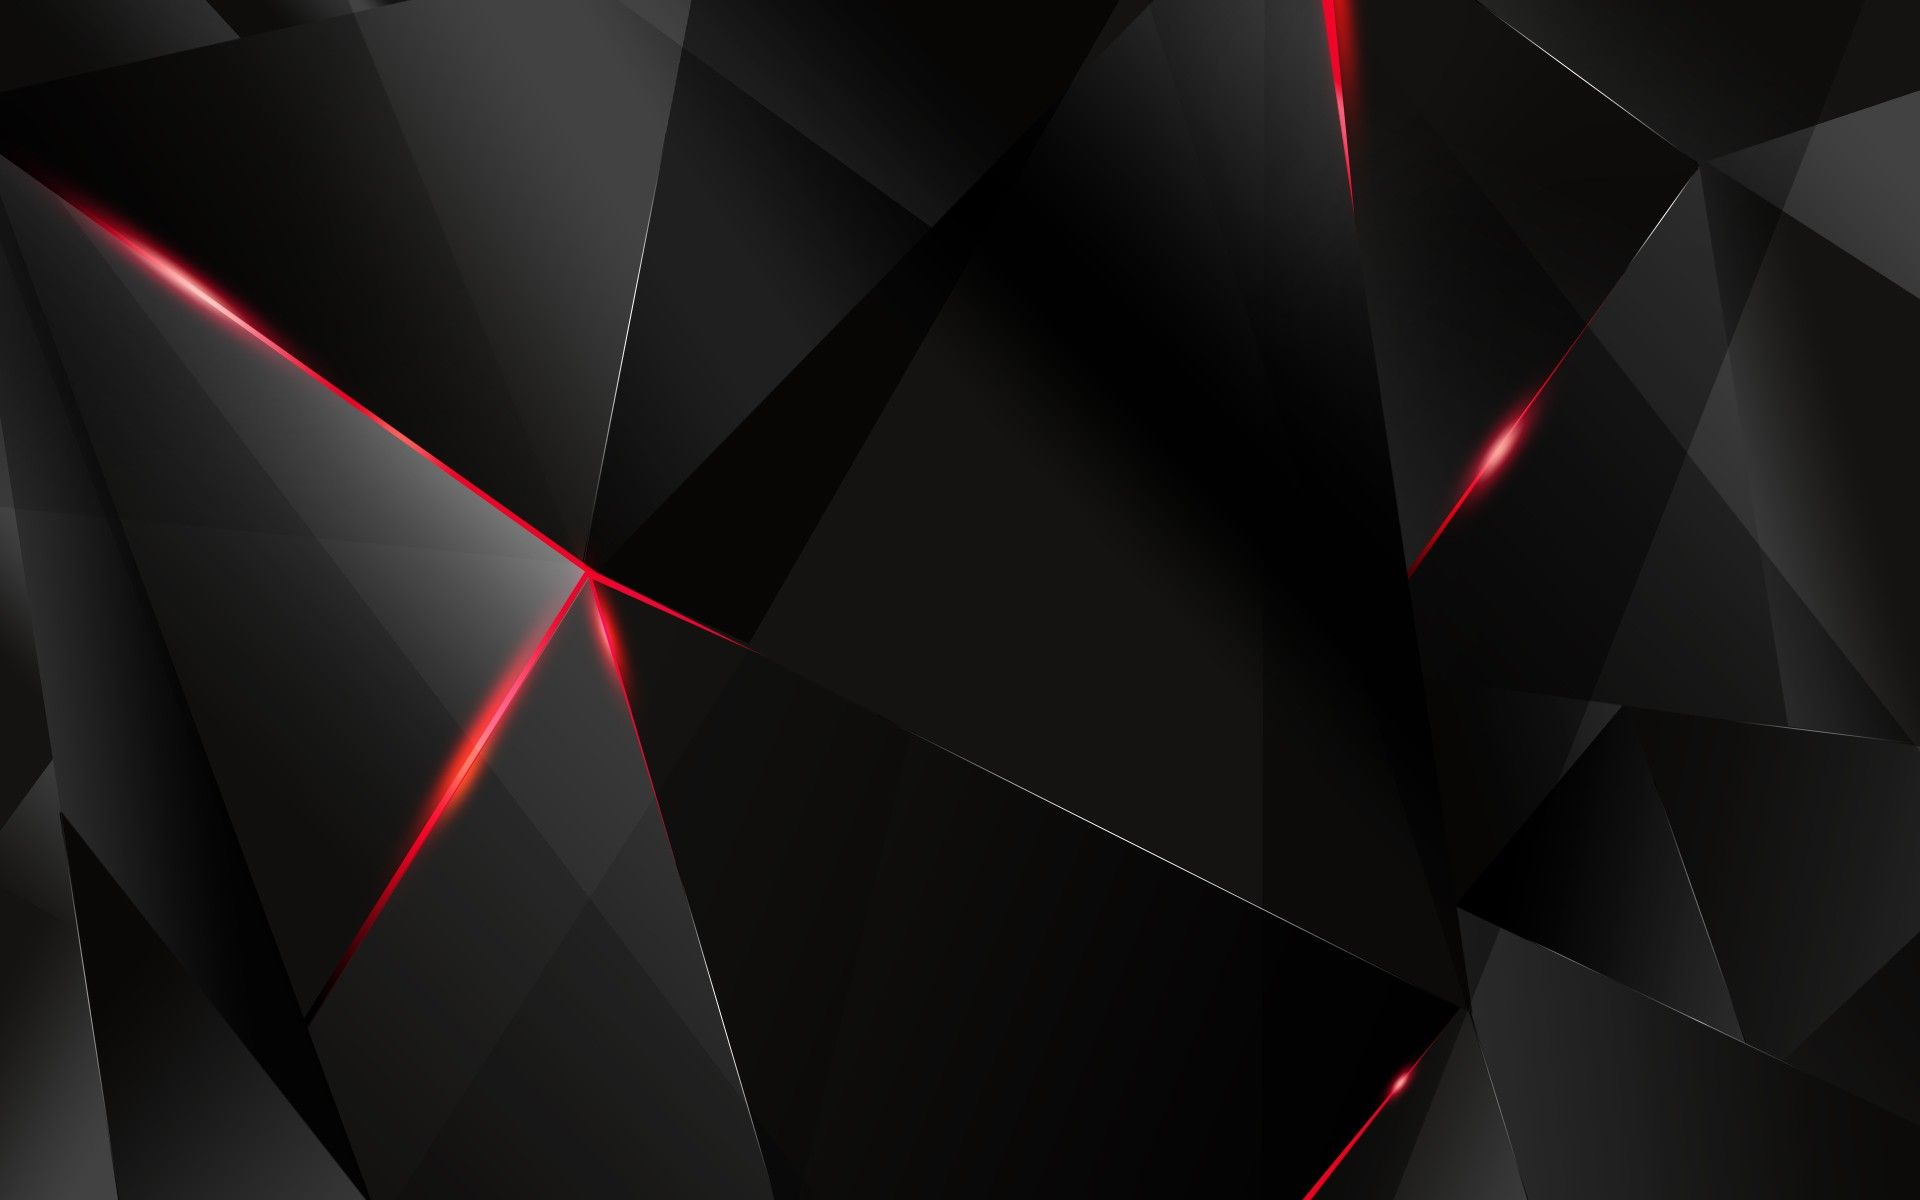 Abstract Dark Geometry Wallpapers Red And Black Wallpaper Dark Black Wallpaper 2048x1152 Wallpapers